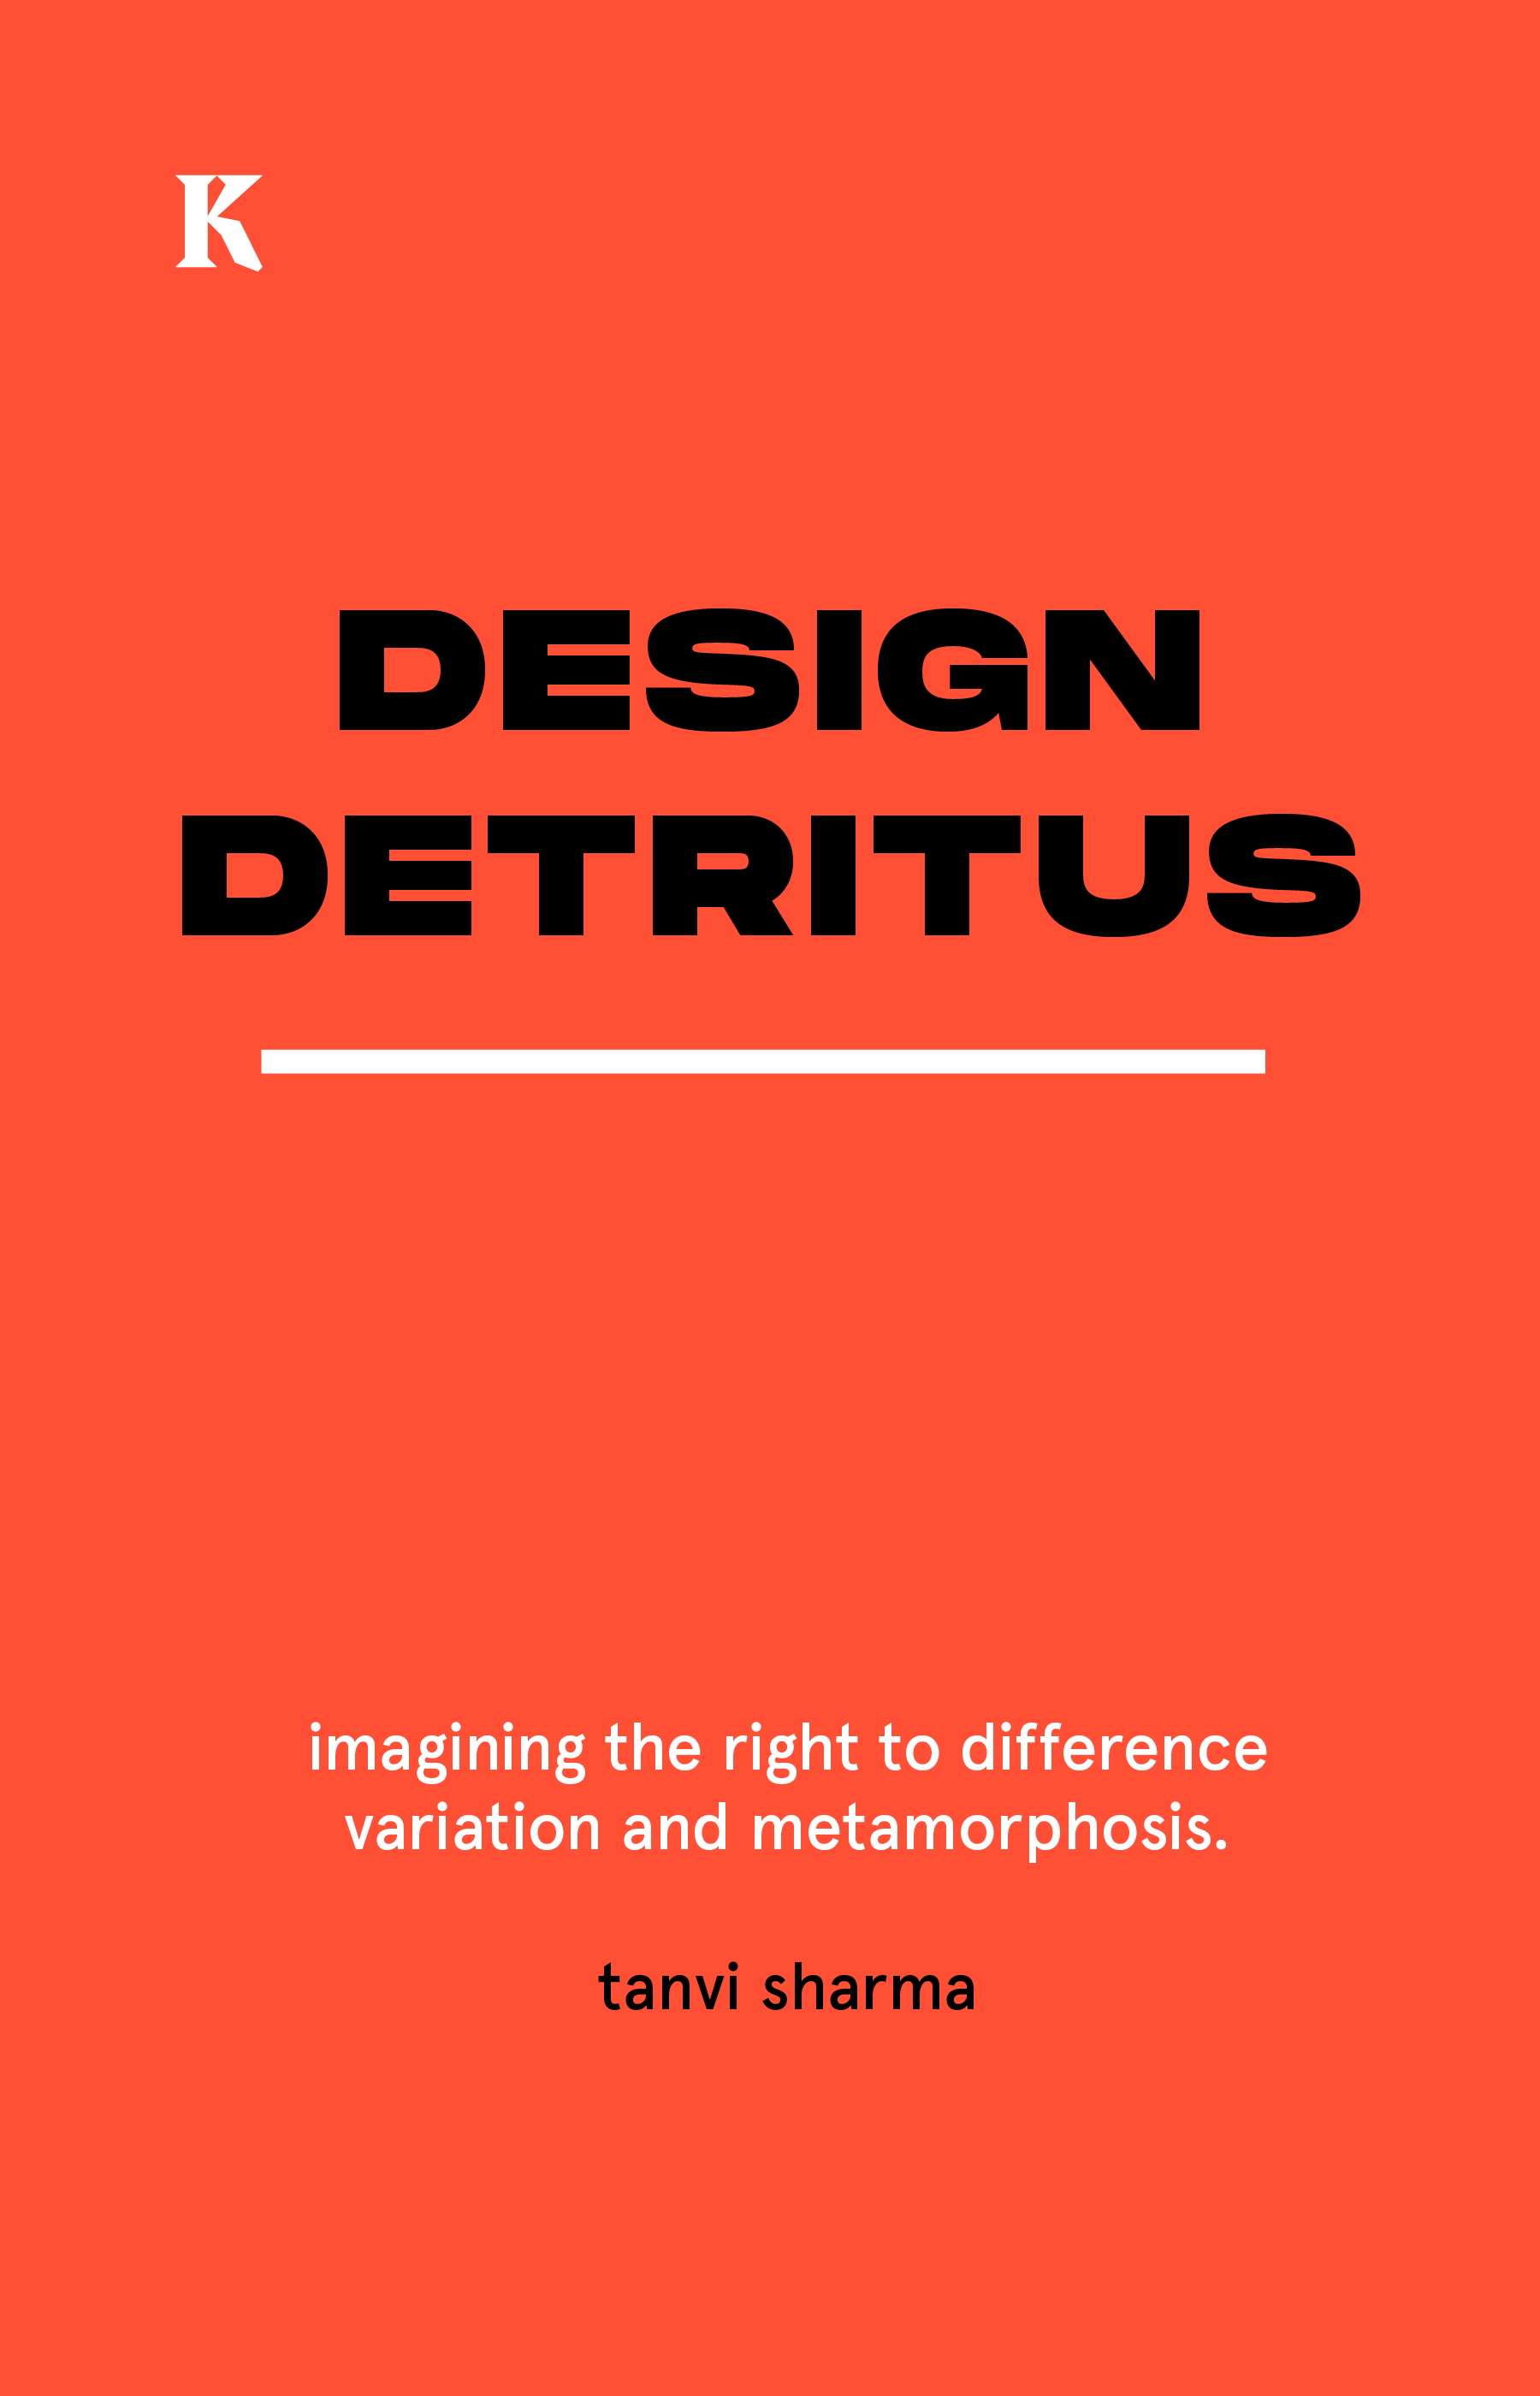 manifesto template 2.png